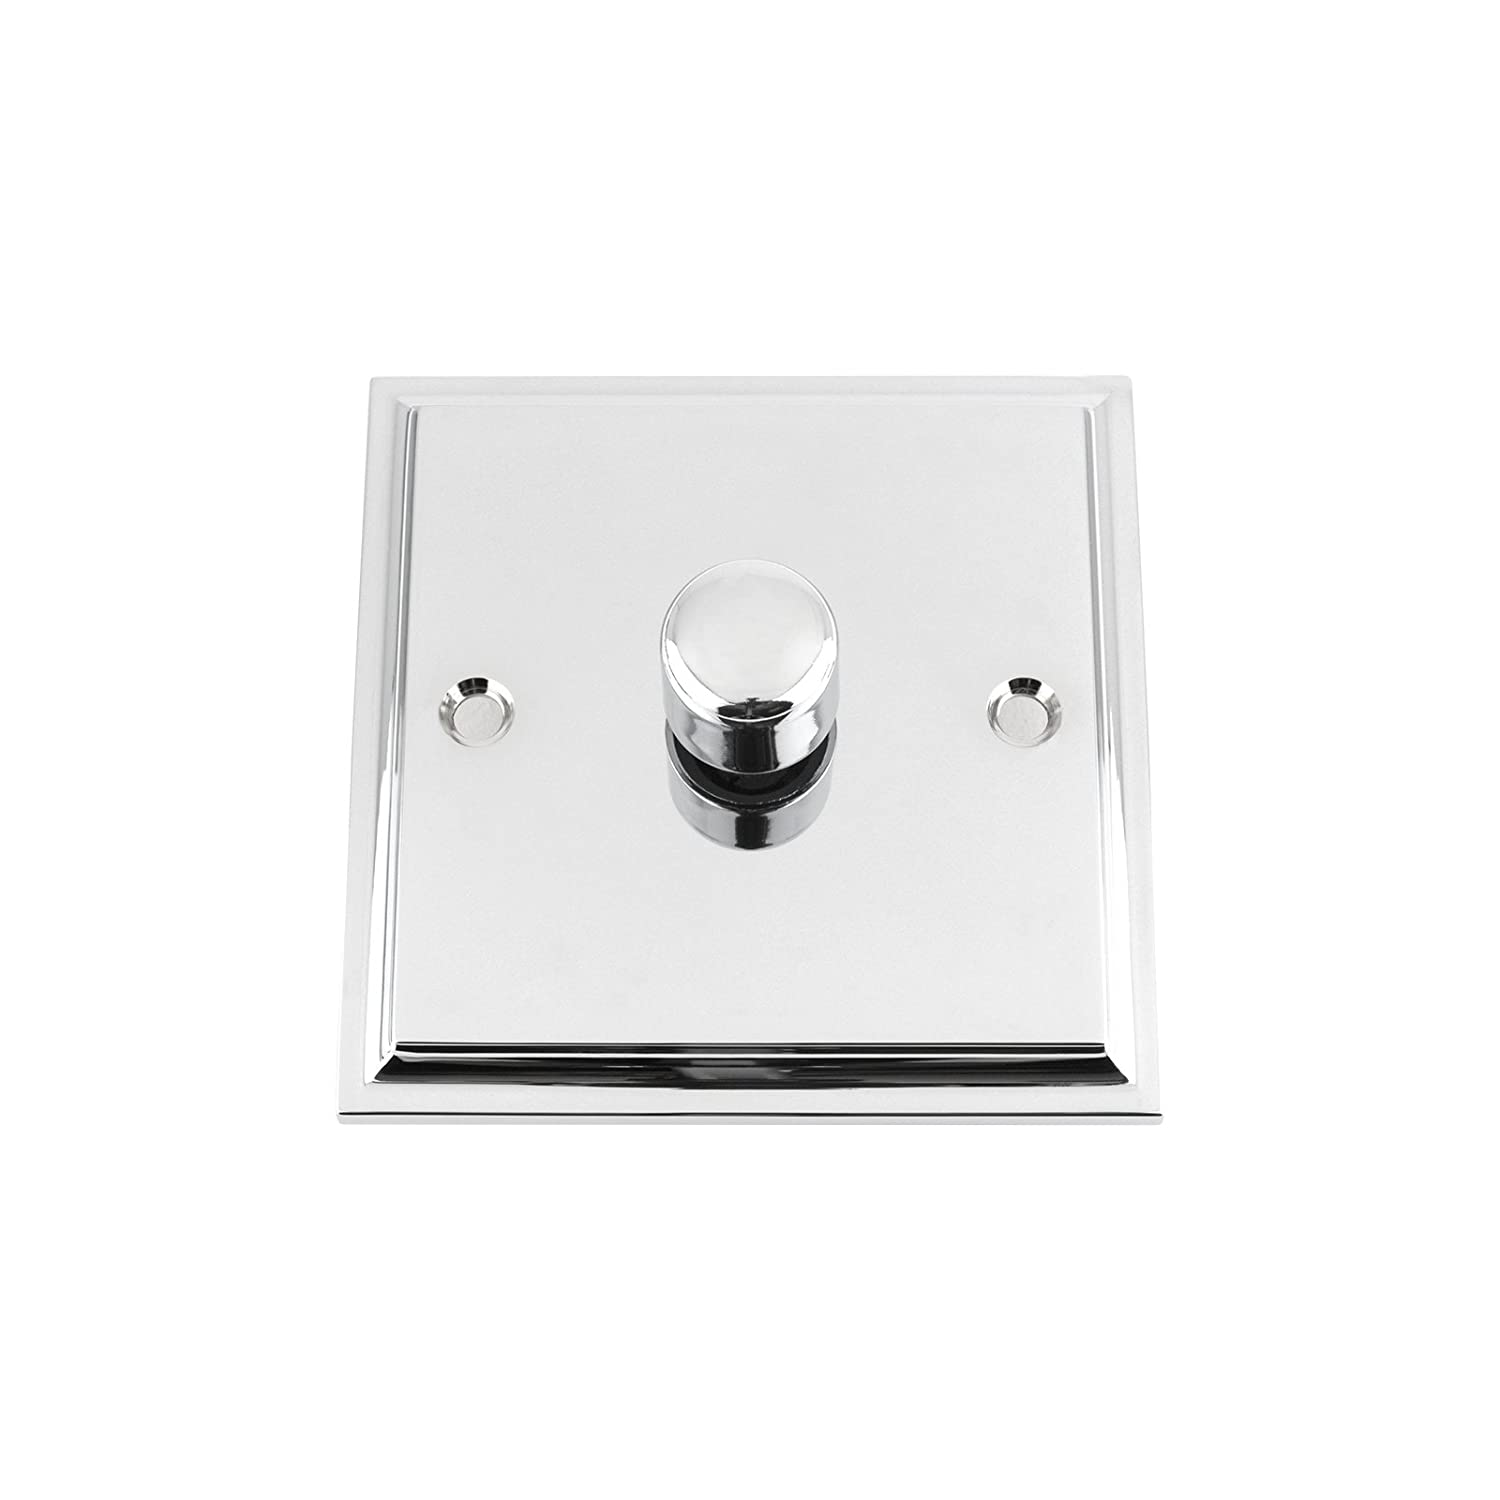 10 Amp Light Dimmer Switch 1 Gang 2 Way 1000W - Victorian - Polished Chrome A5 Products Ltd